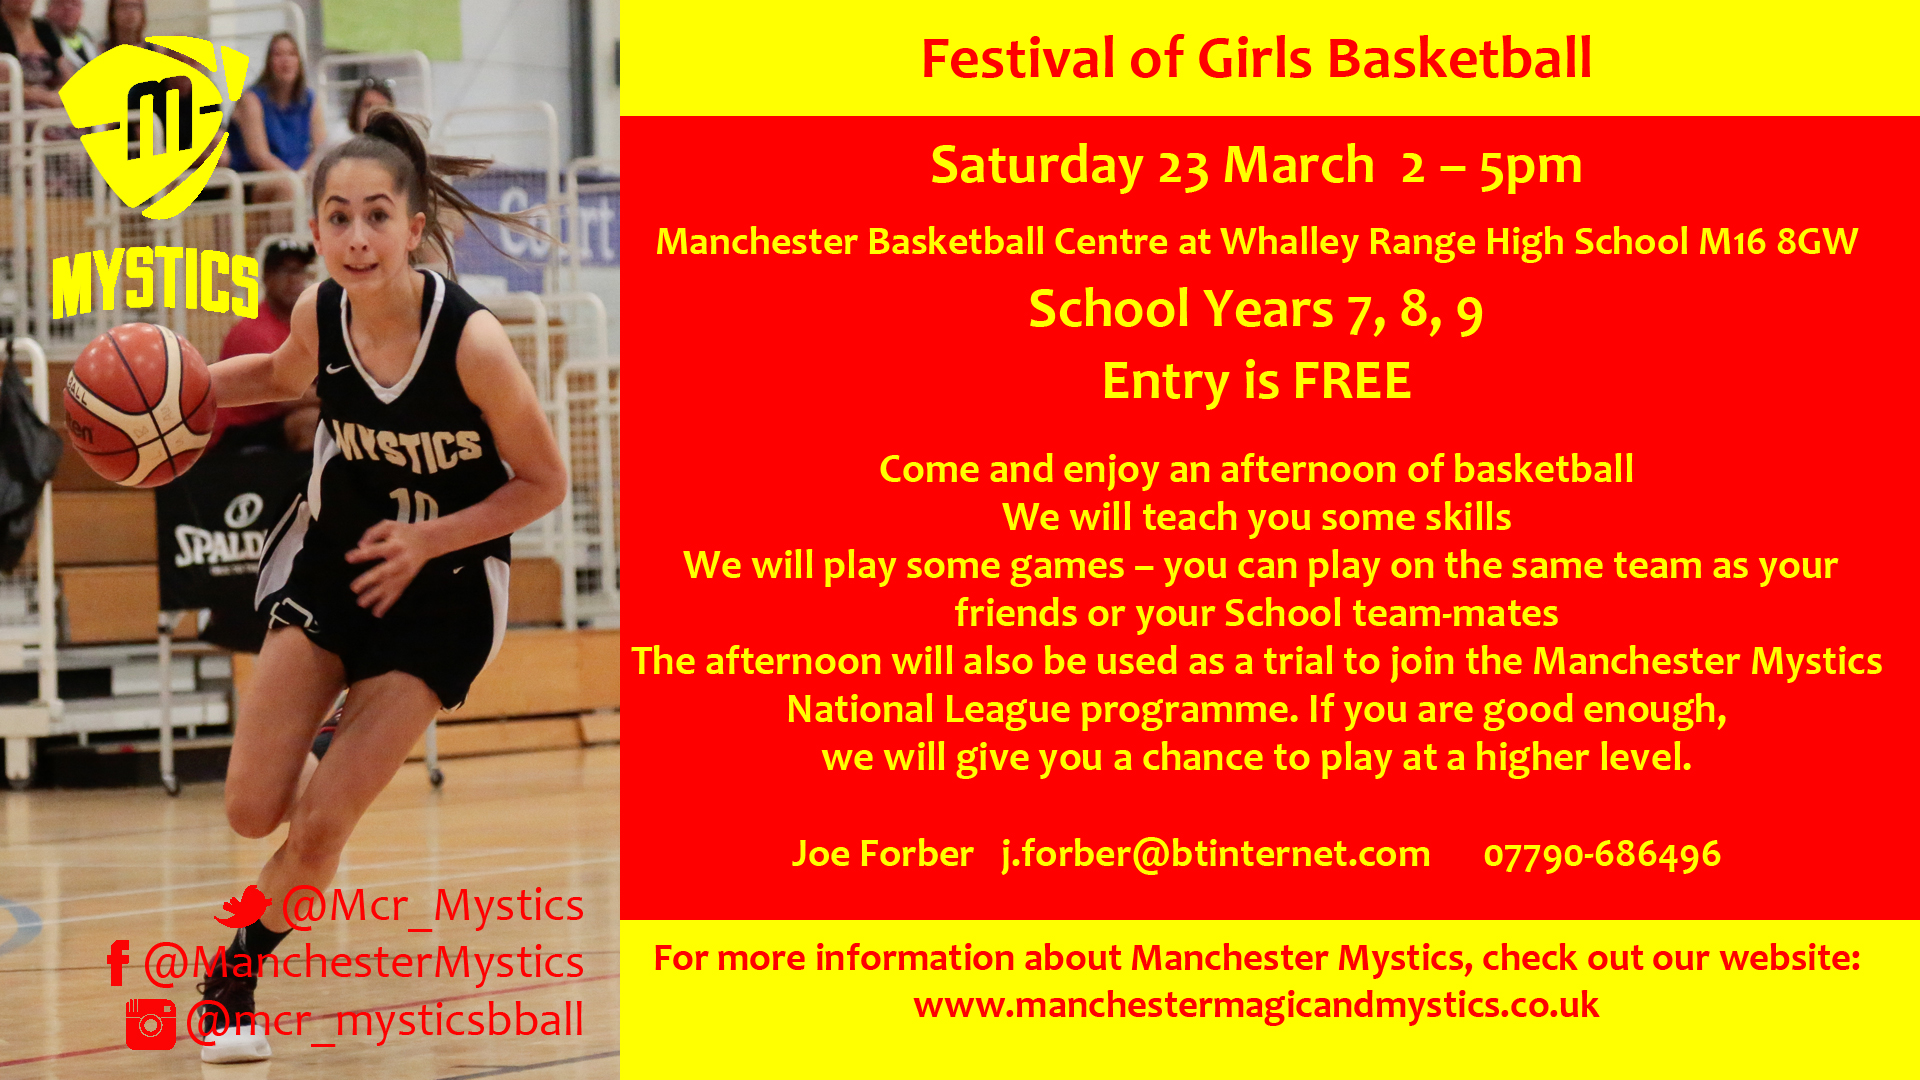 Festival of Girls Basketball Saturday 23rd March 2-5pm Manchester Basketball Centre, Whalley Range High School, M16 8GW